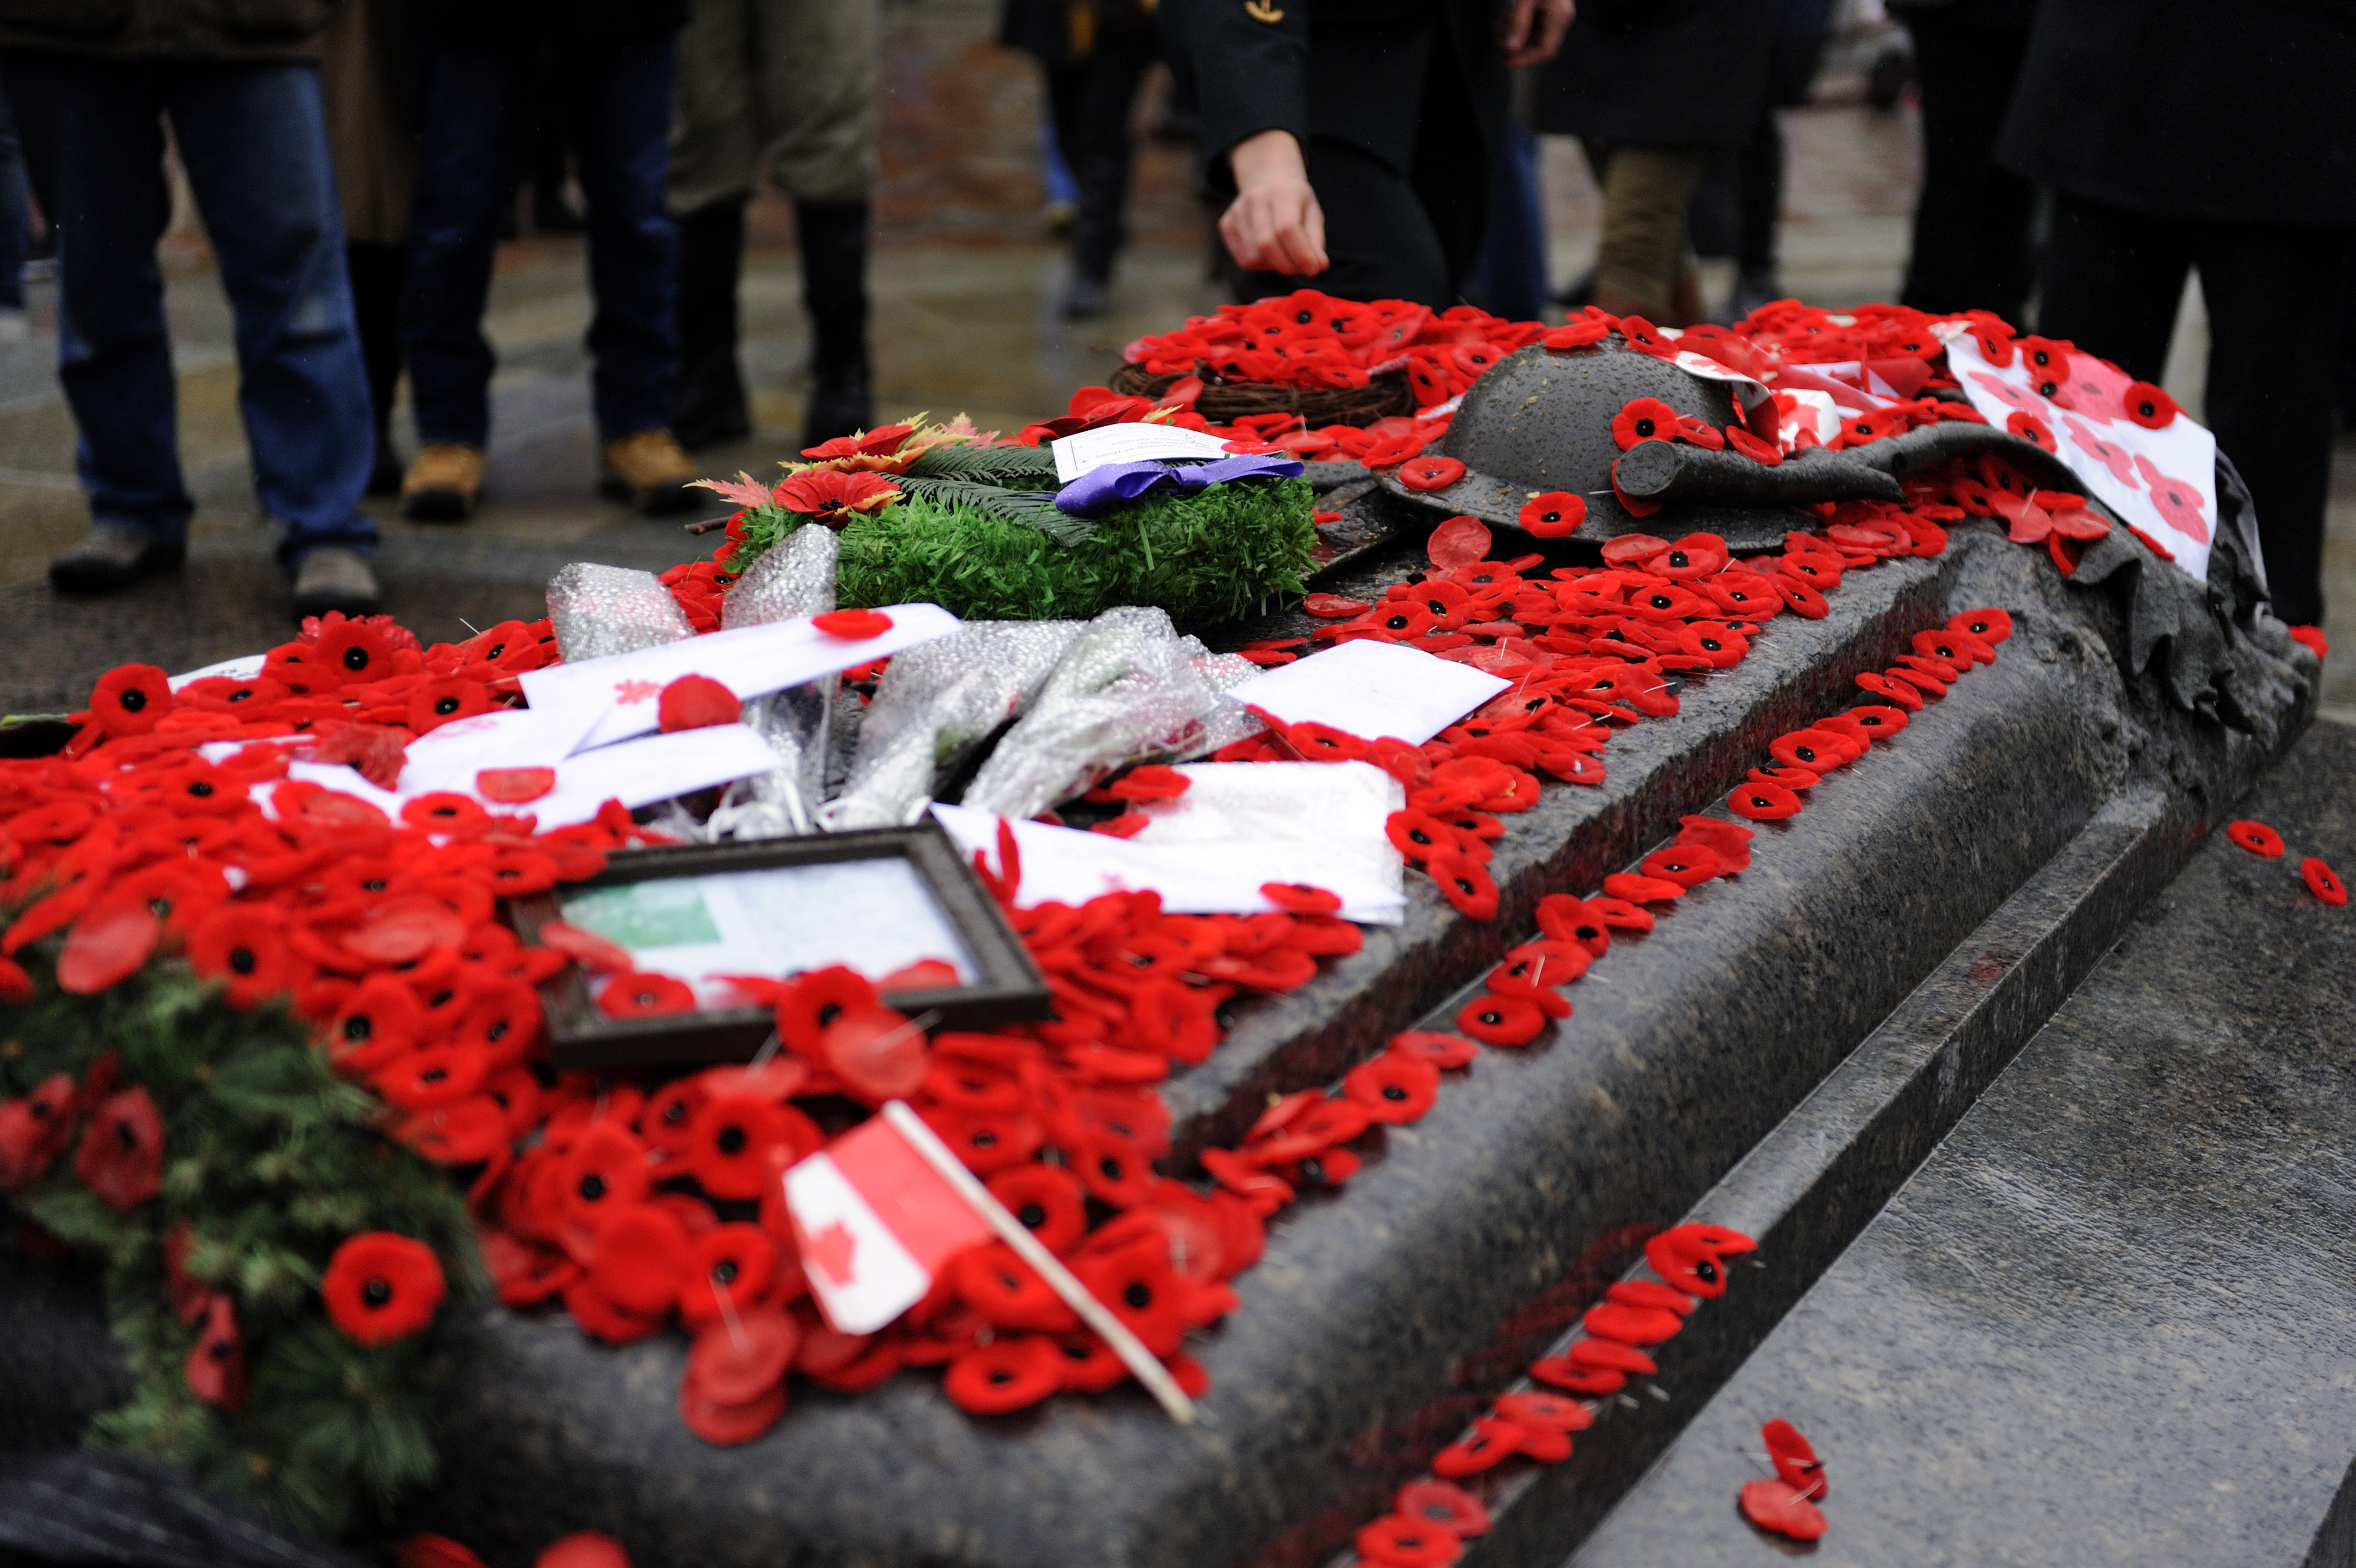 The Tomb of the Unknown Soldier is blanketed with poppies, wreaths, flags and images at the National War Memorial following the Remembrance Day ceremony in Ottawa, Ontario on November 11, 2013.